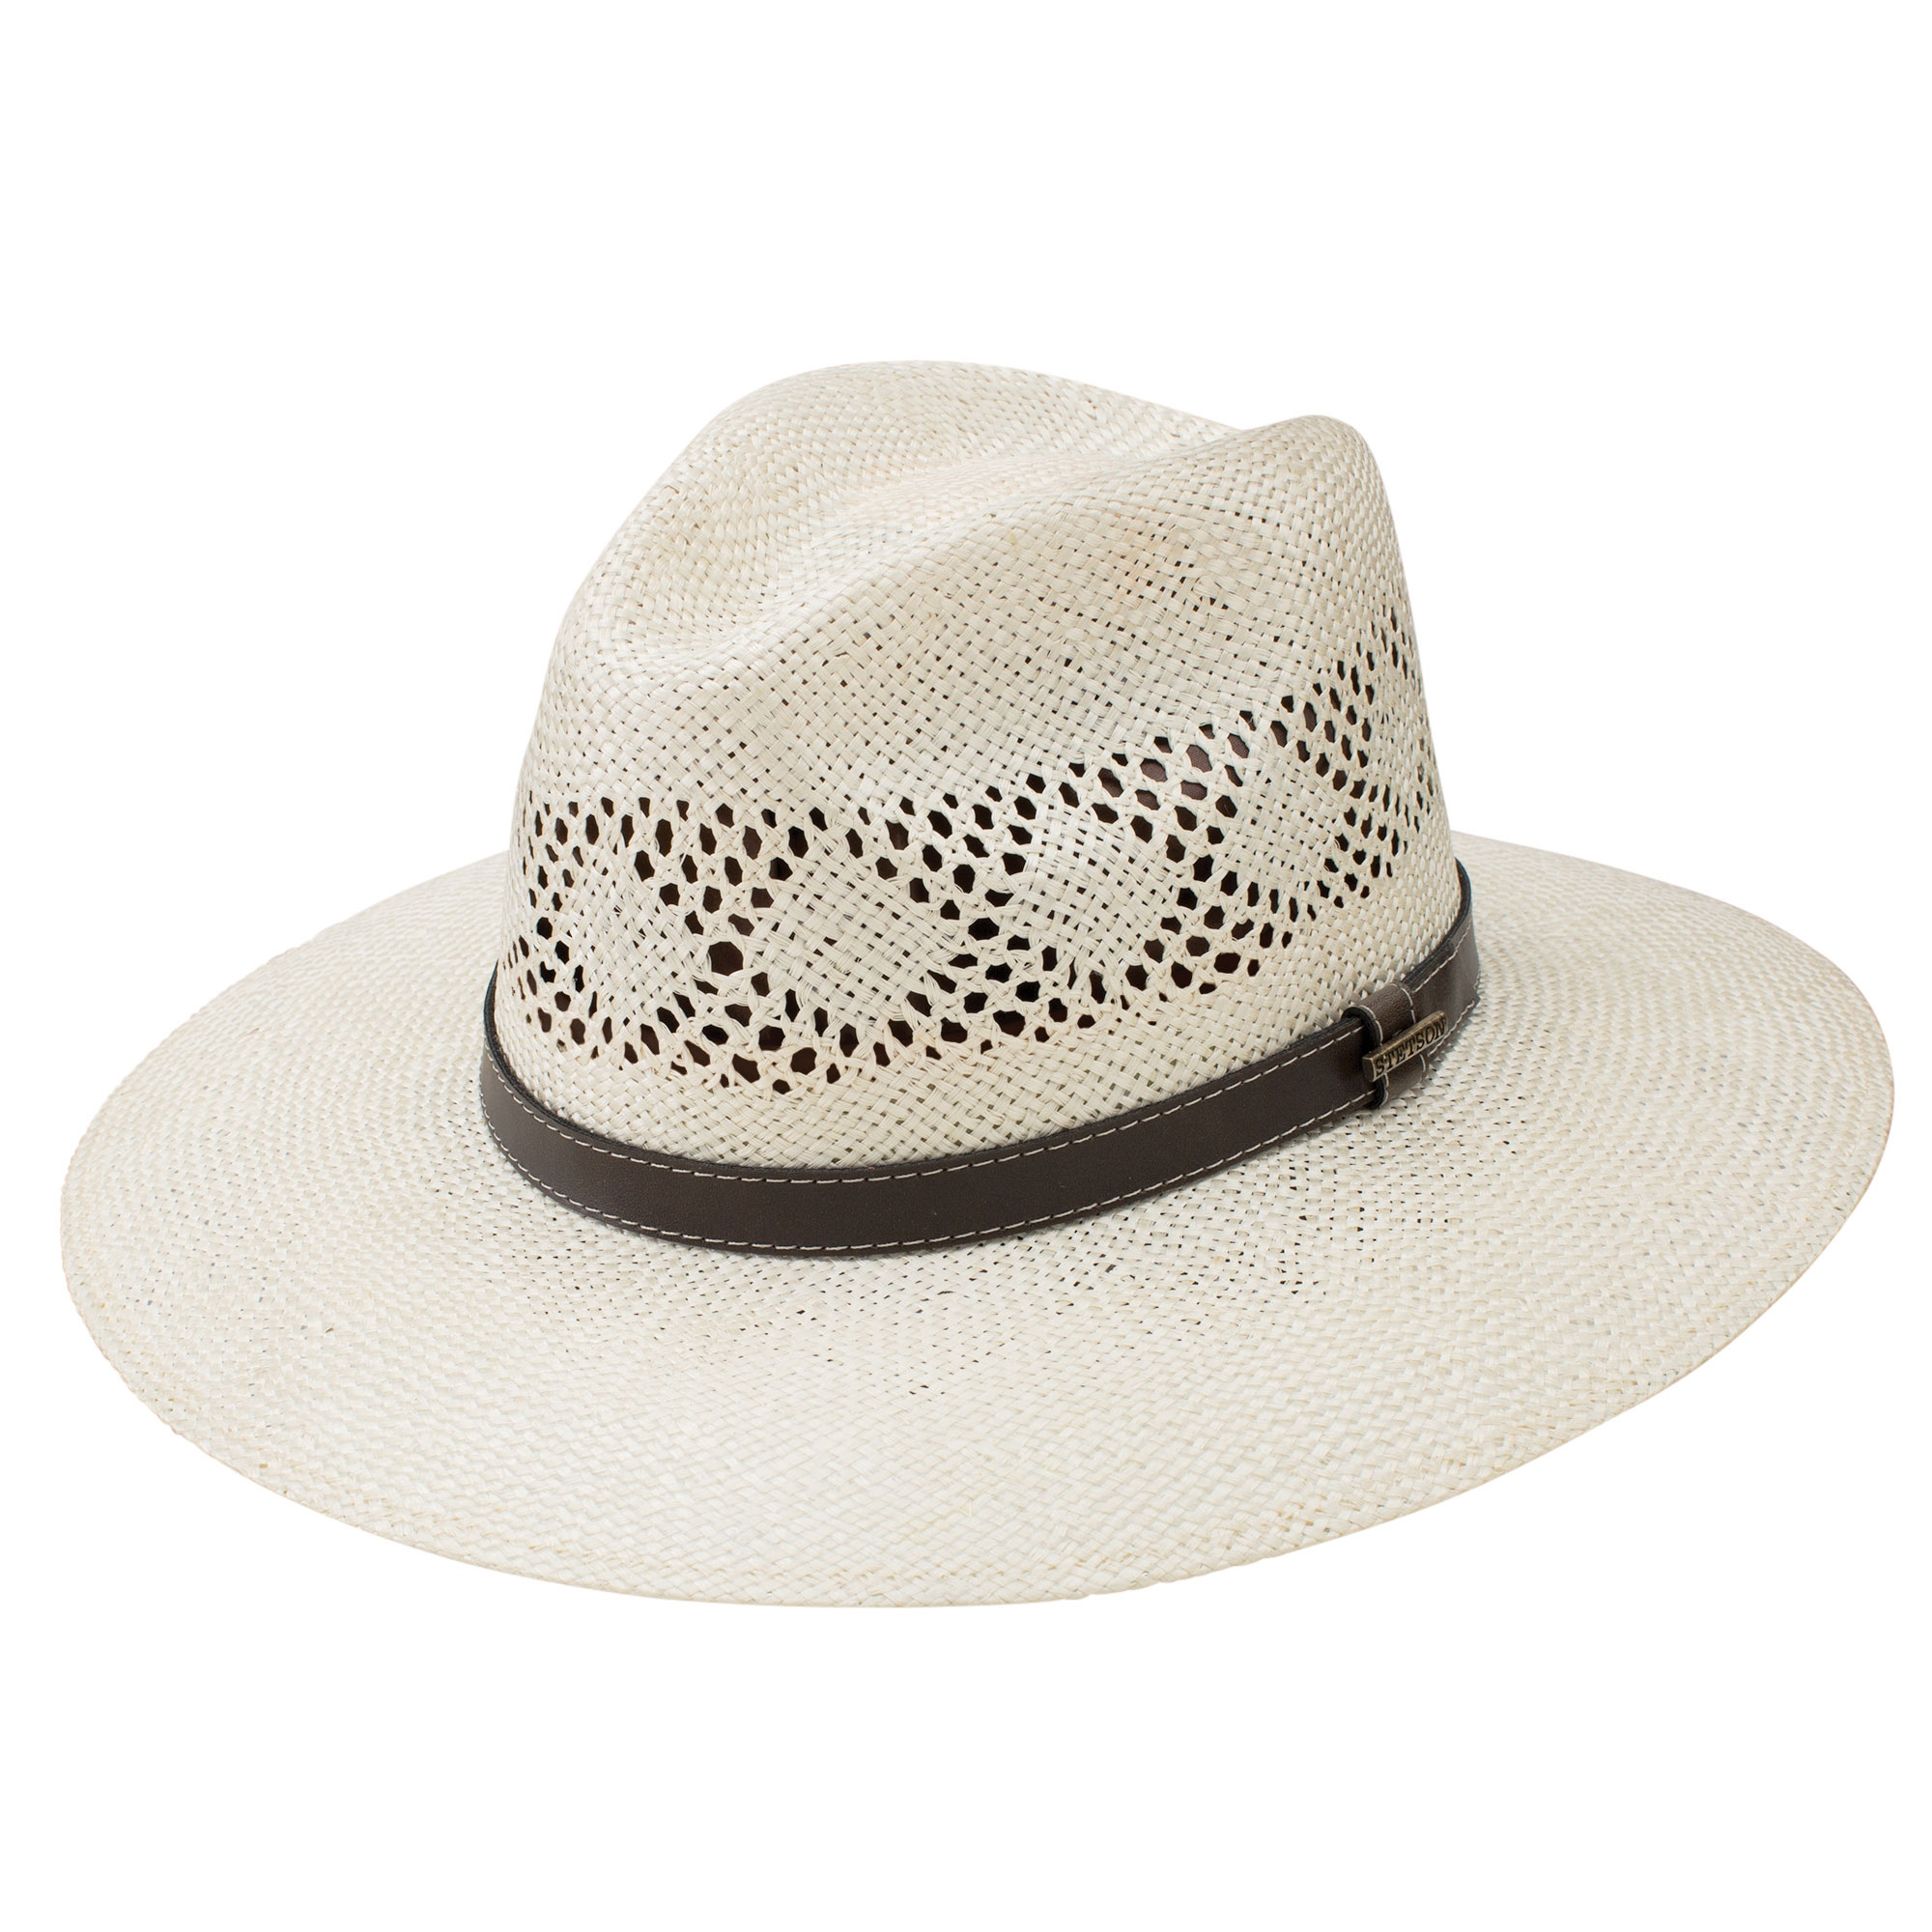 Stetson Carolina - Shantung Outdoorsman Hat